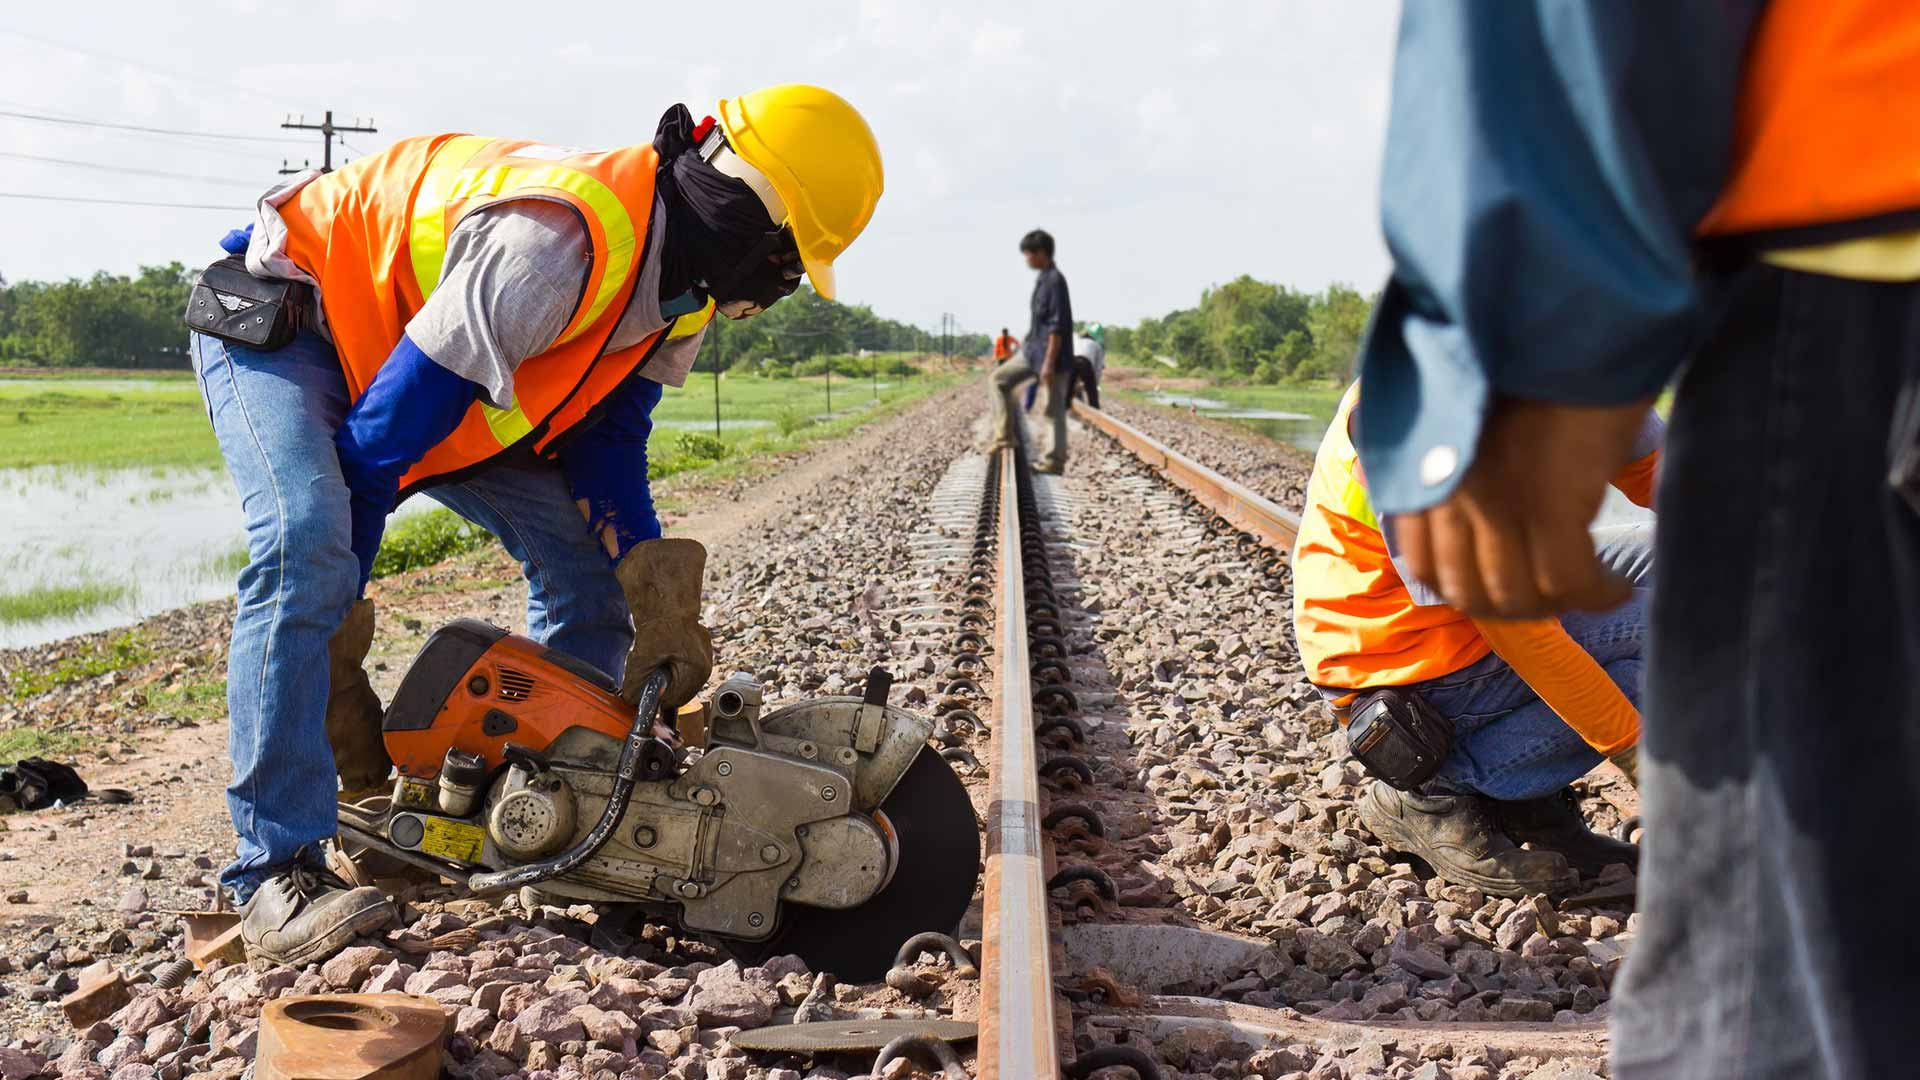 22096234 Workers Were Cutting Tracks For Maintenance  Stock Photo Railroad